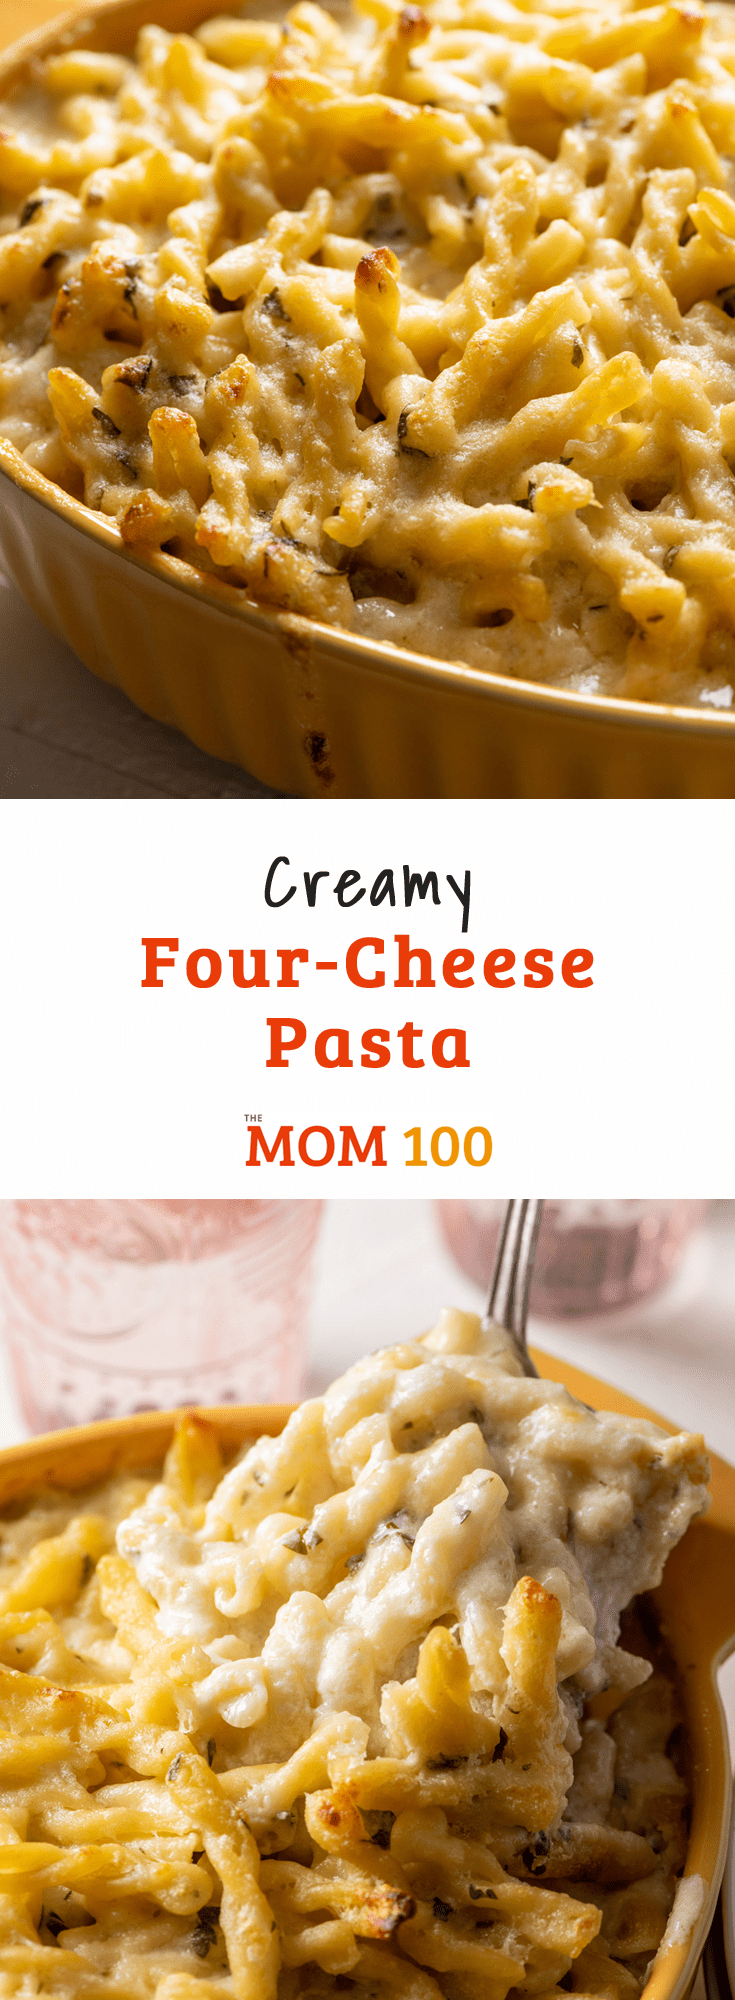 Creamy Four-Cheese Pasta: Ultra velvety and lush thanks to a blend of mascarpone, cheddar, Monterey Jack, and creamy goat cheese.